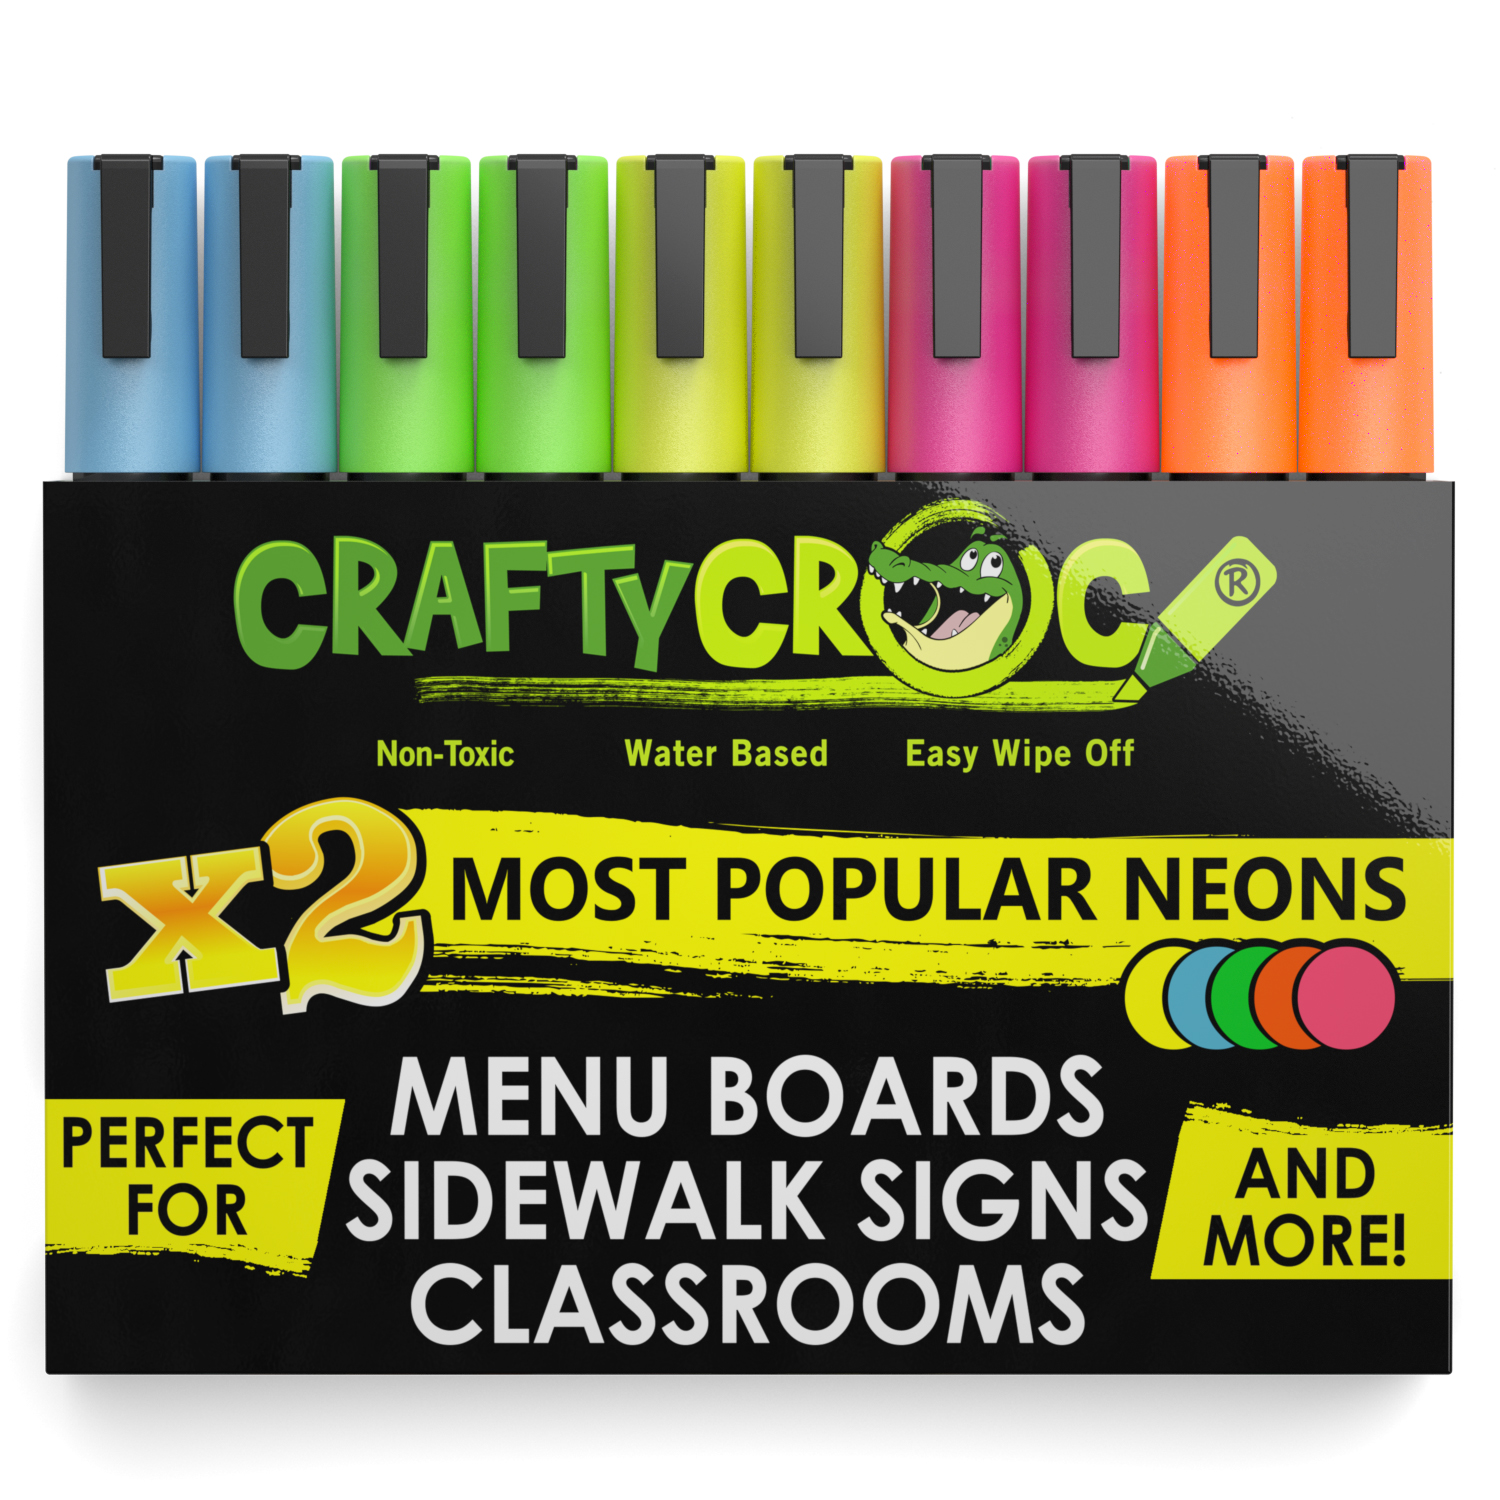 Crafty Croc Liquid Chalk Markers, Multi-Pack of Vibrant Neon Colors, 10-Pack